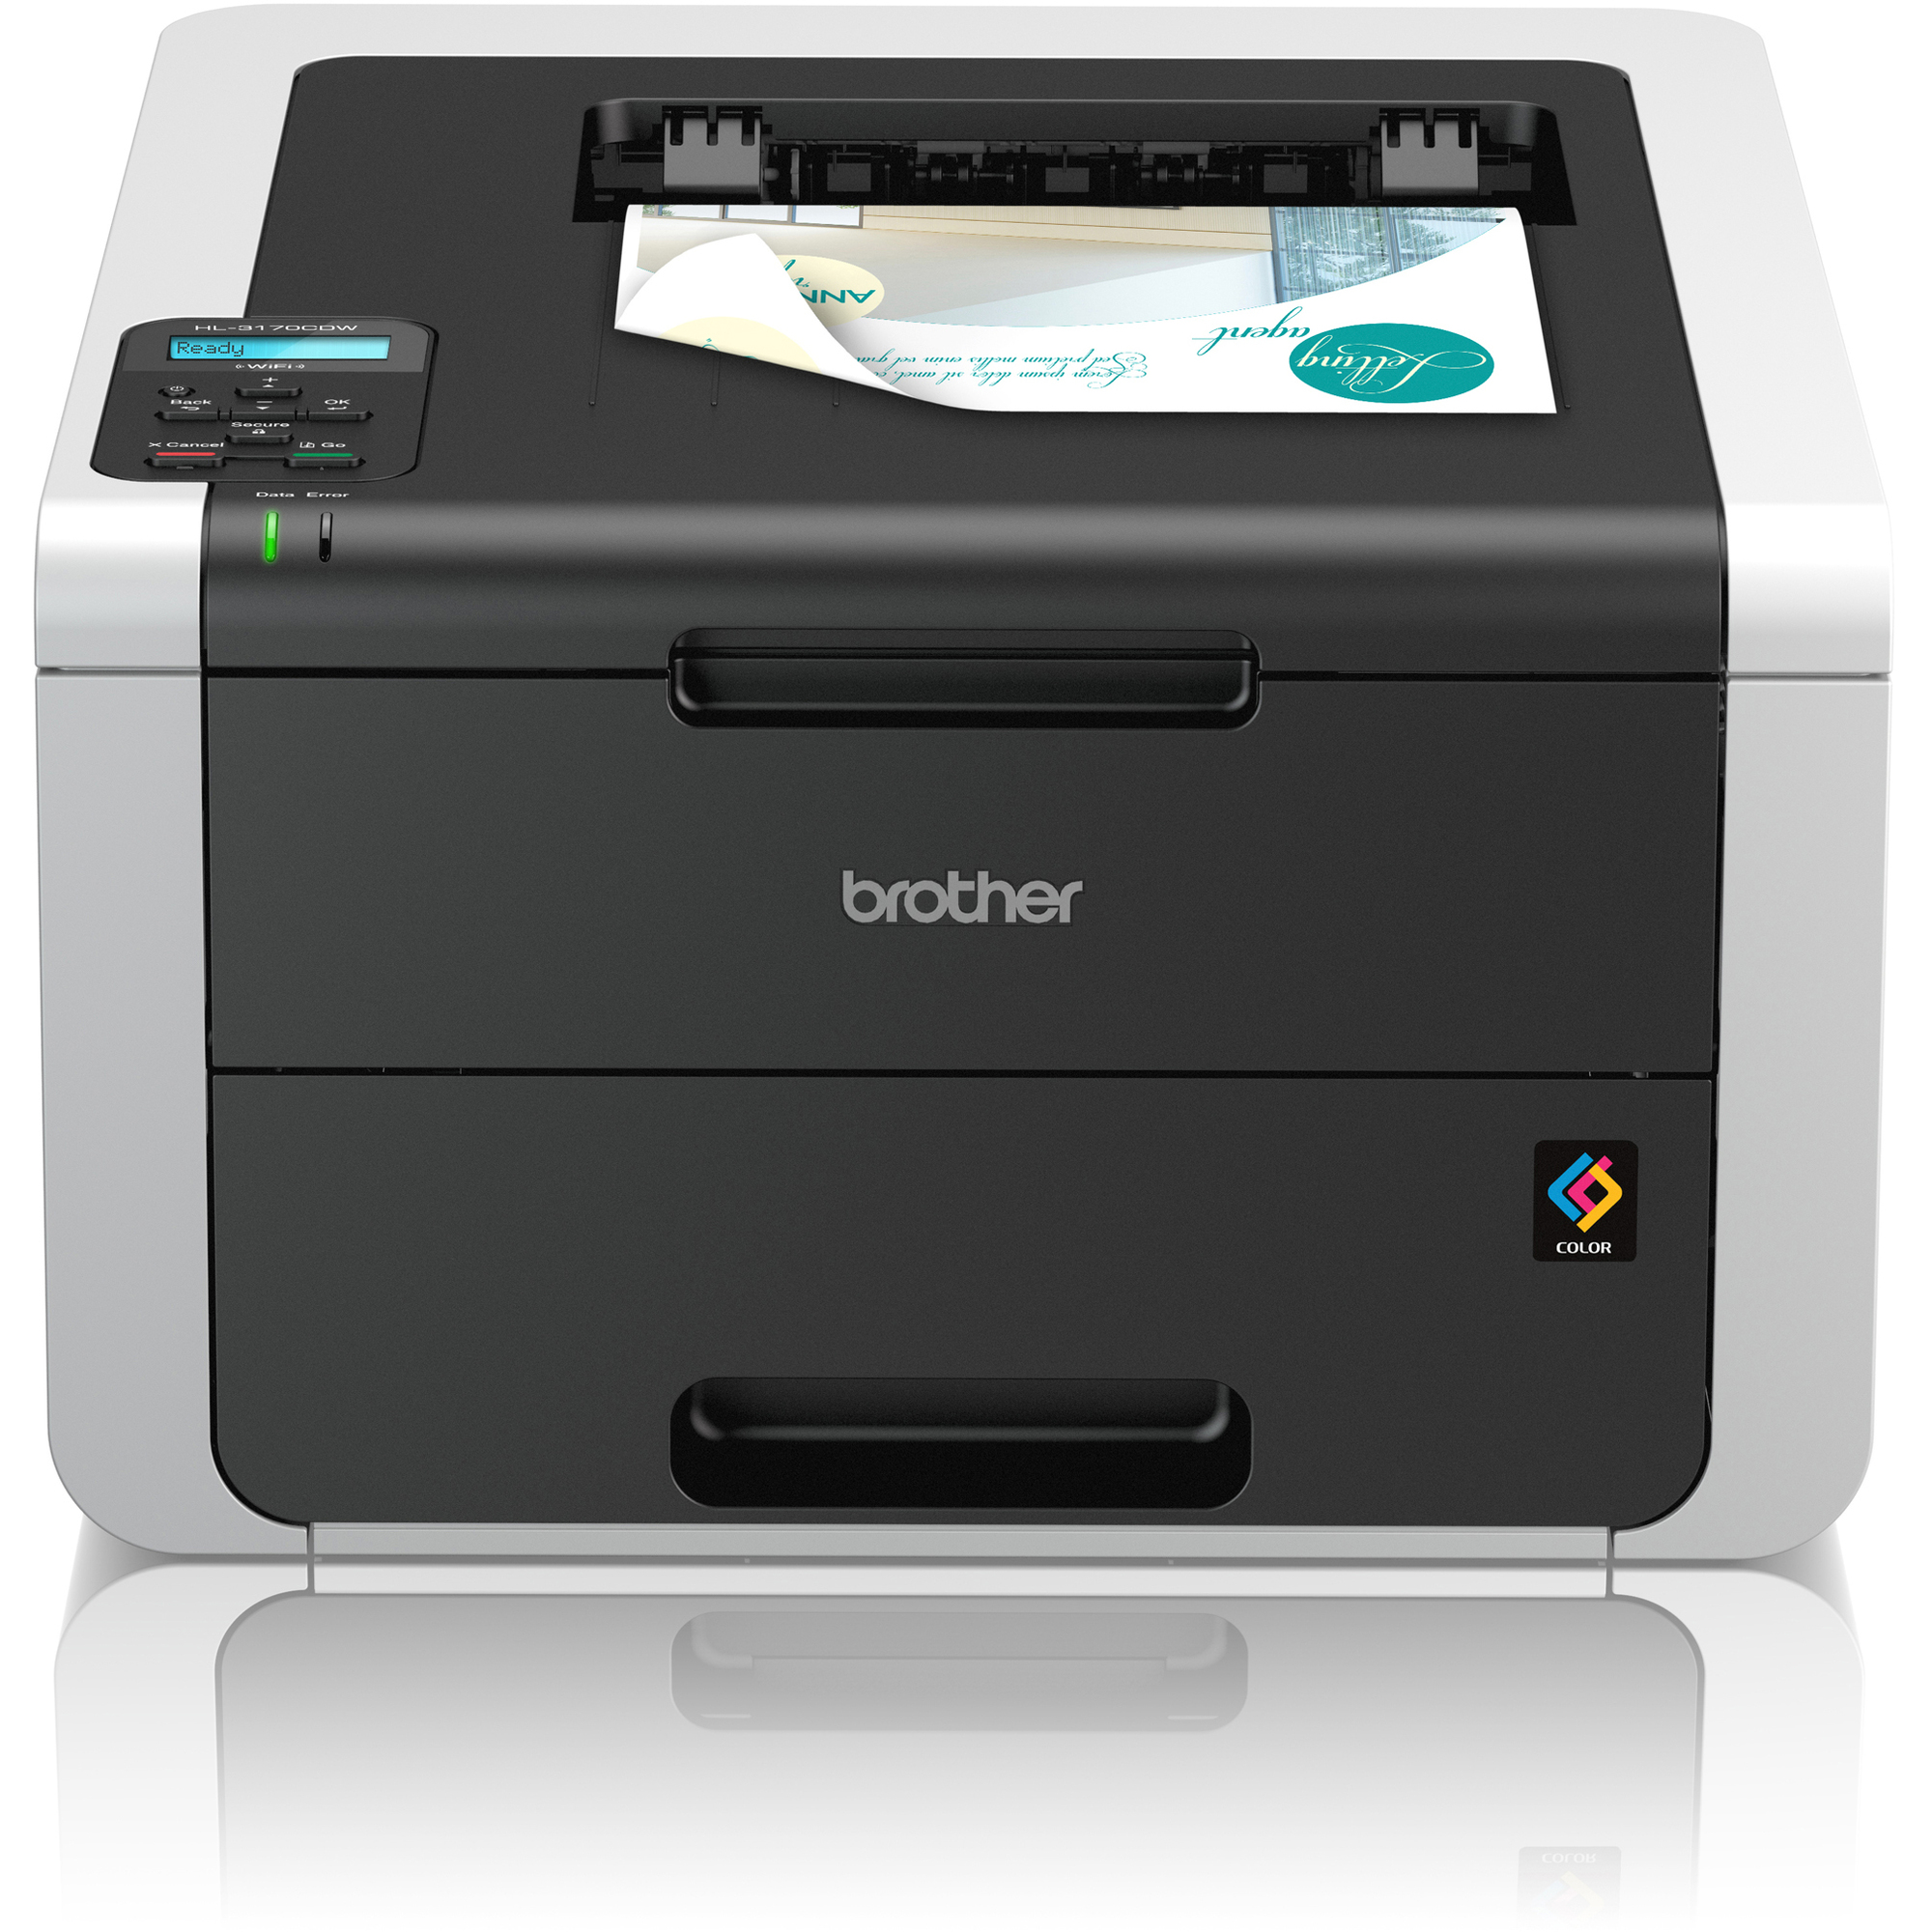 Brother HL3170CDW LED Printer - Colour - 2400 x 600 dpi Print - Plain Paper Print - Desktop